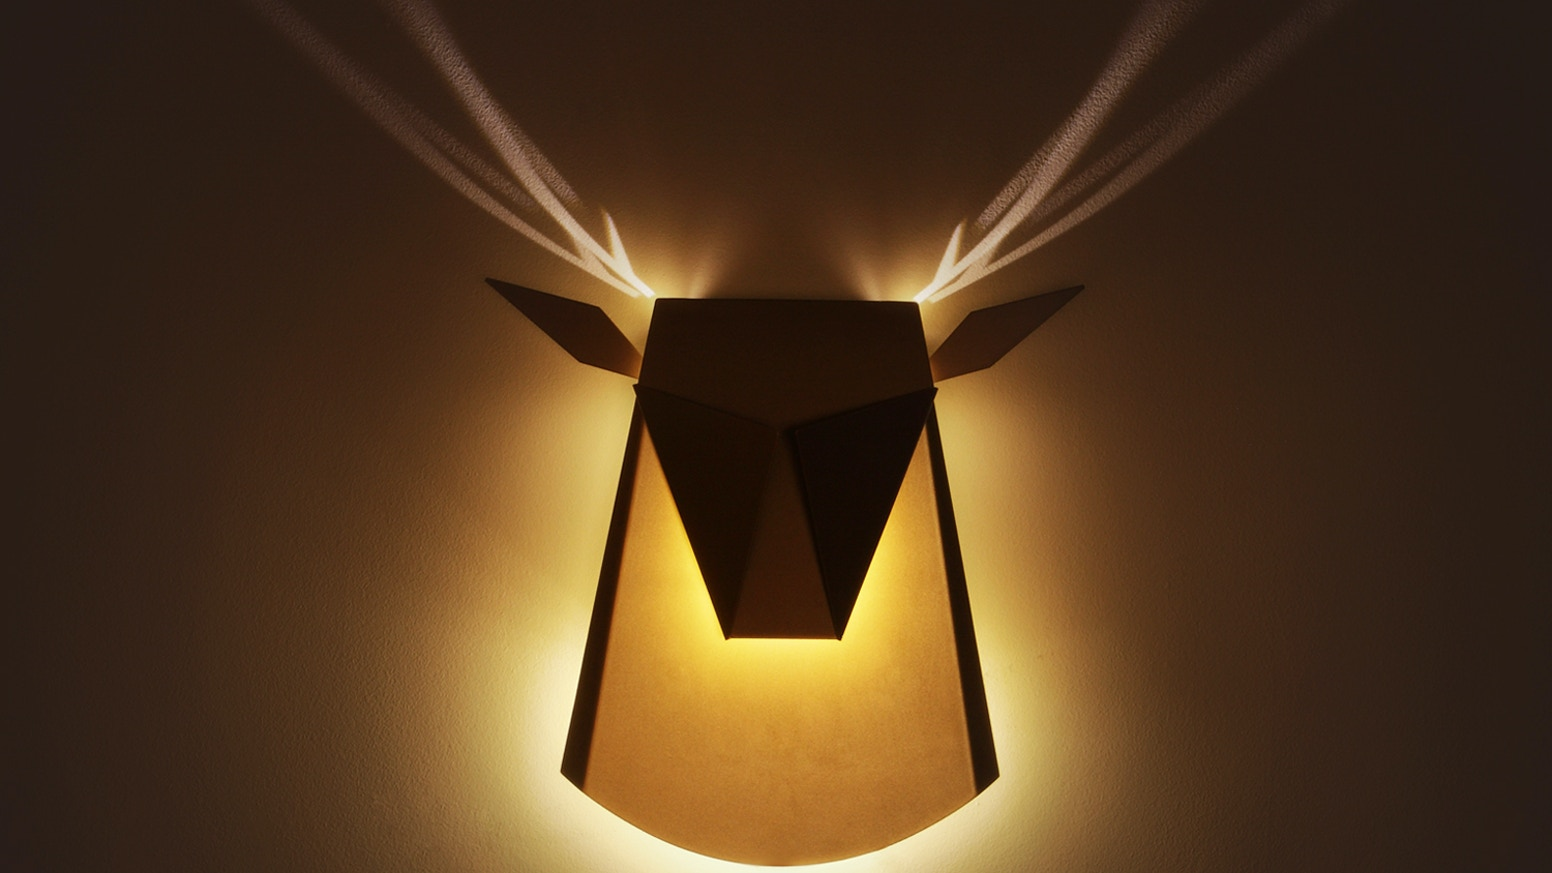 POPUP LIGHTING- WHEN LIGHT MEETS ART by Chen Bikovski — Kickstarter